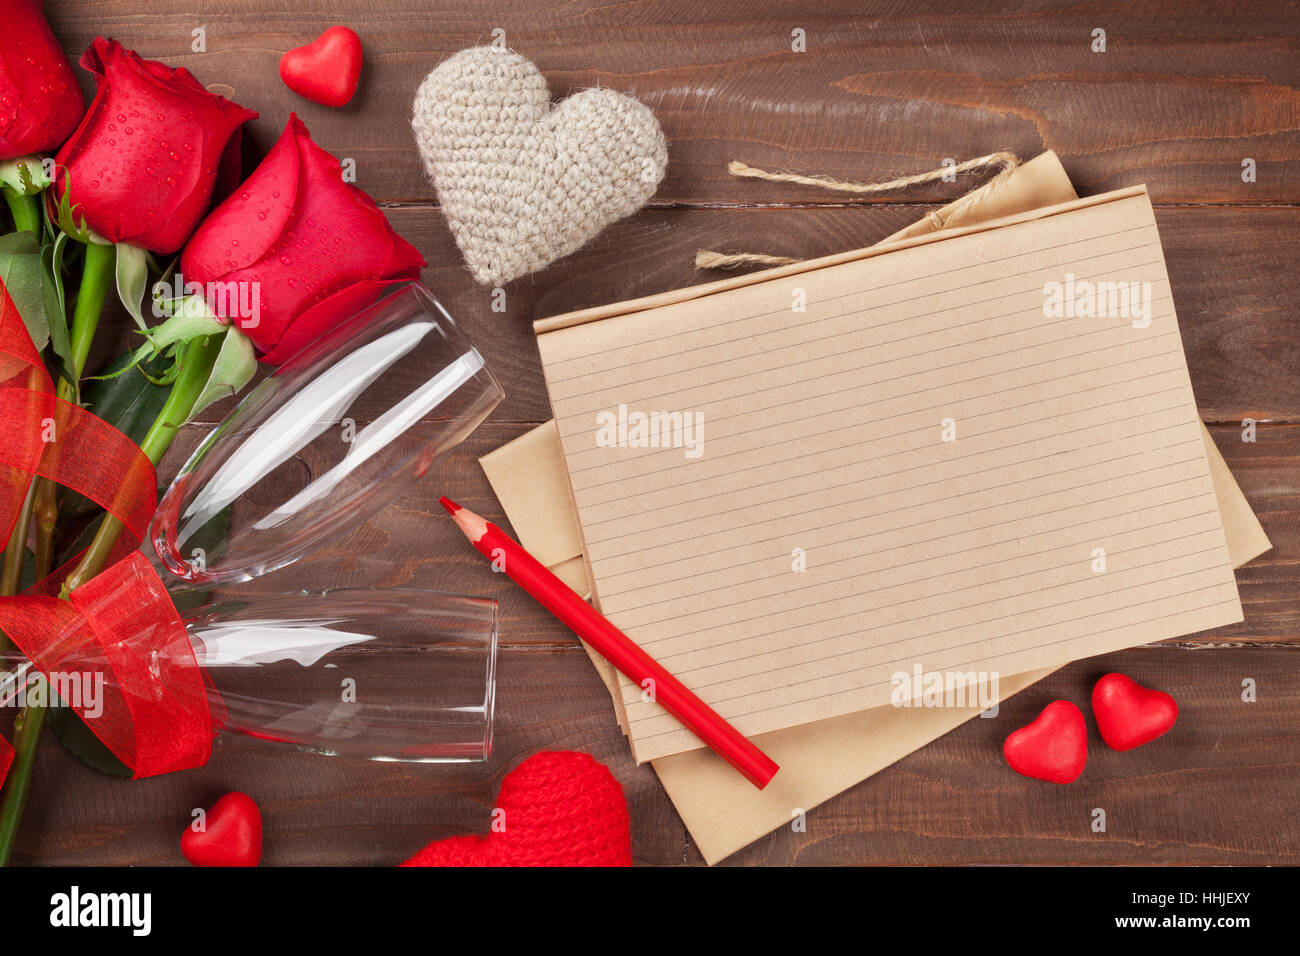 Valentines Day Letter Champagne And Red Roses On Wooden Table Top